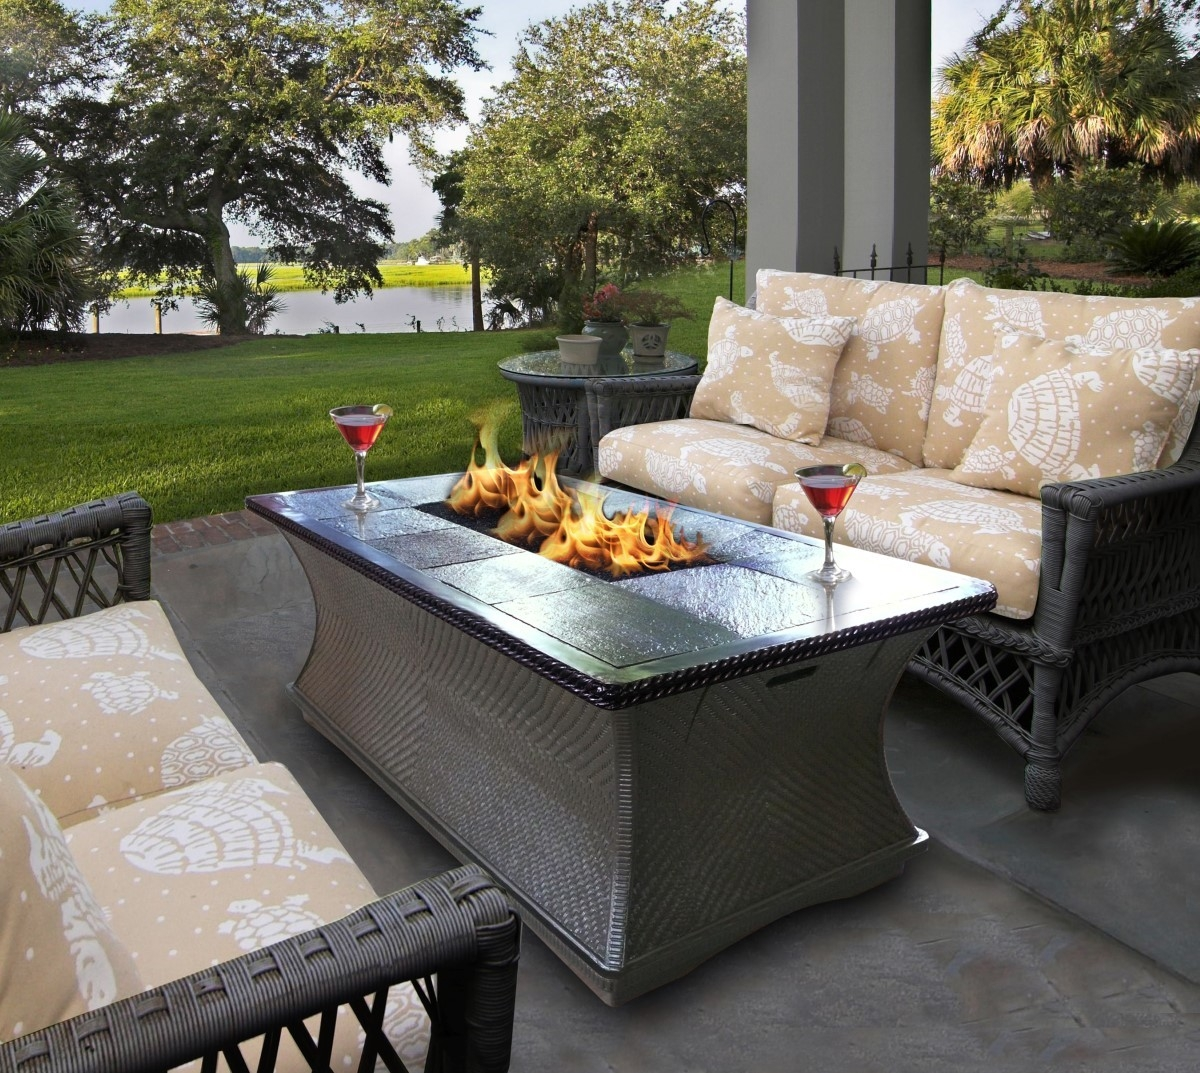 Best Of Rattan Garden Furniture With Fire Pit